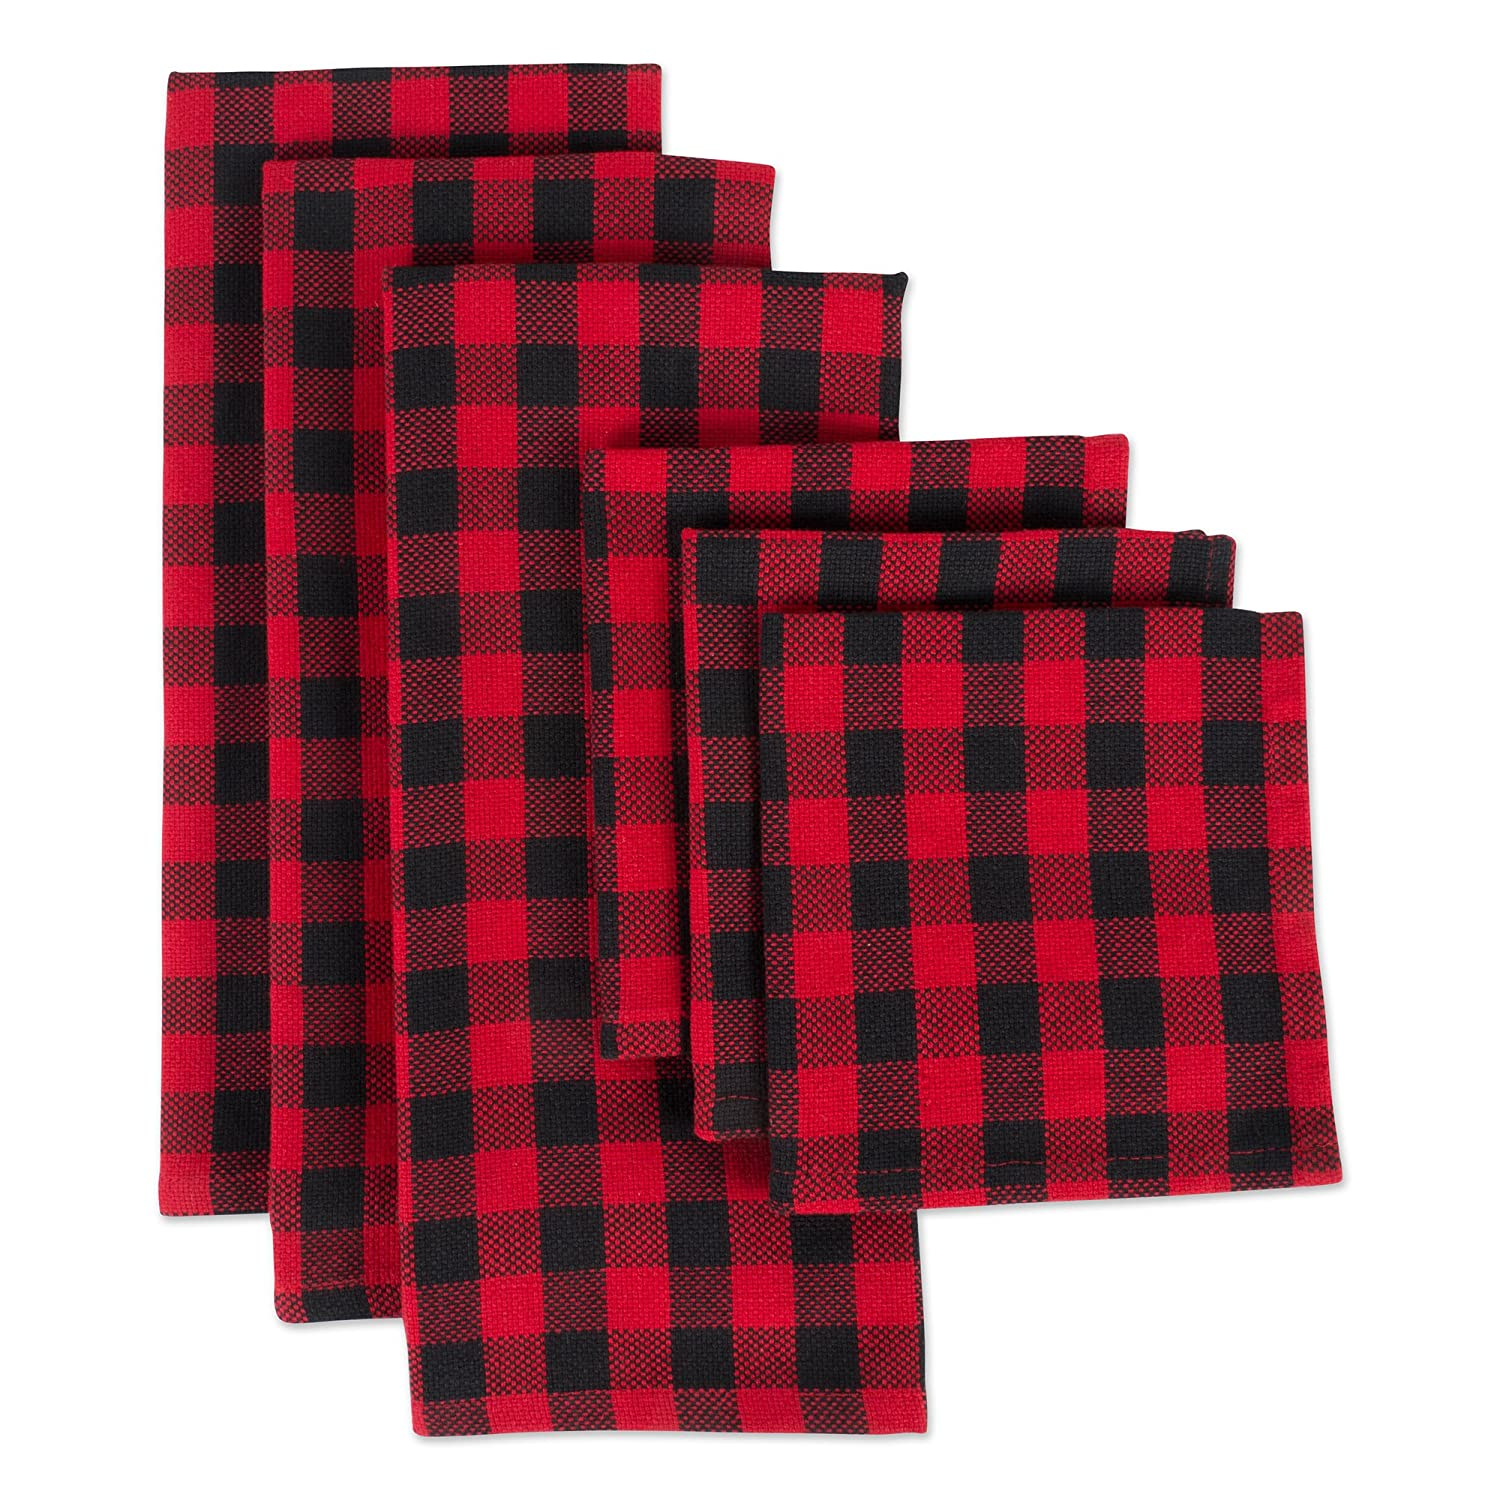 "DII CAMZ10628 Cotton Plaid Kitchen Set, Dishcloth: 18"" x 28""/Dishtowel: 13"" x 13"", Red and Black 6 Pack"